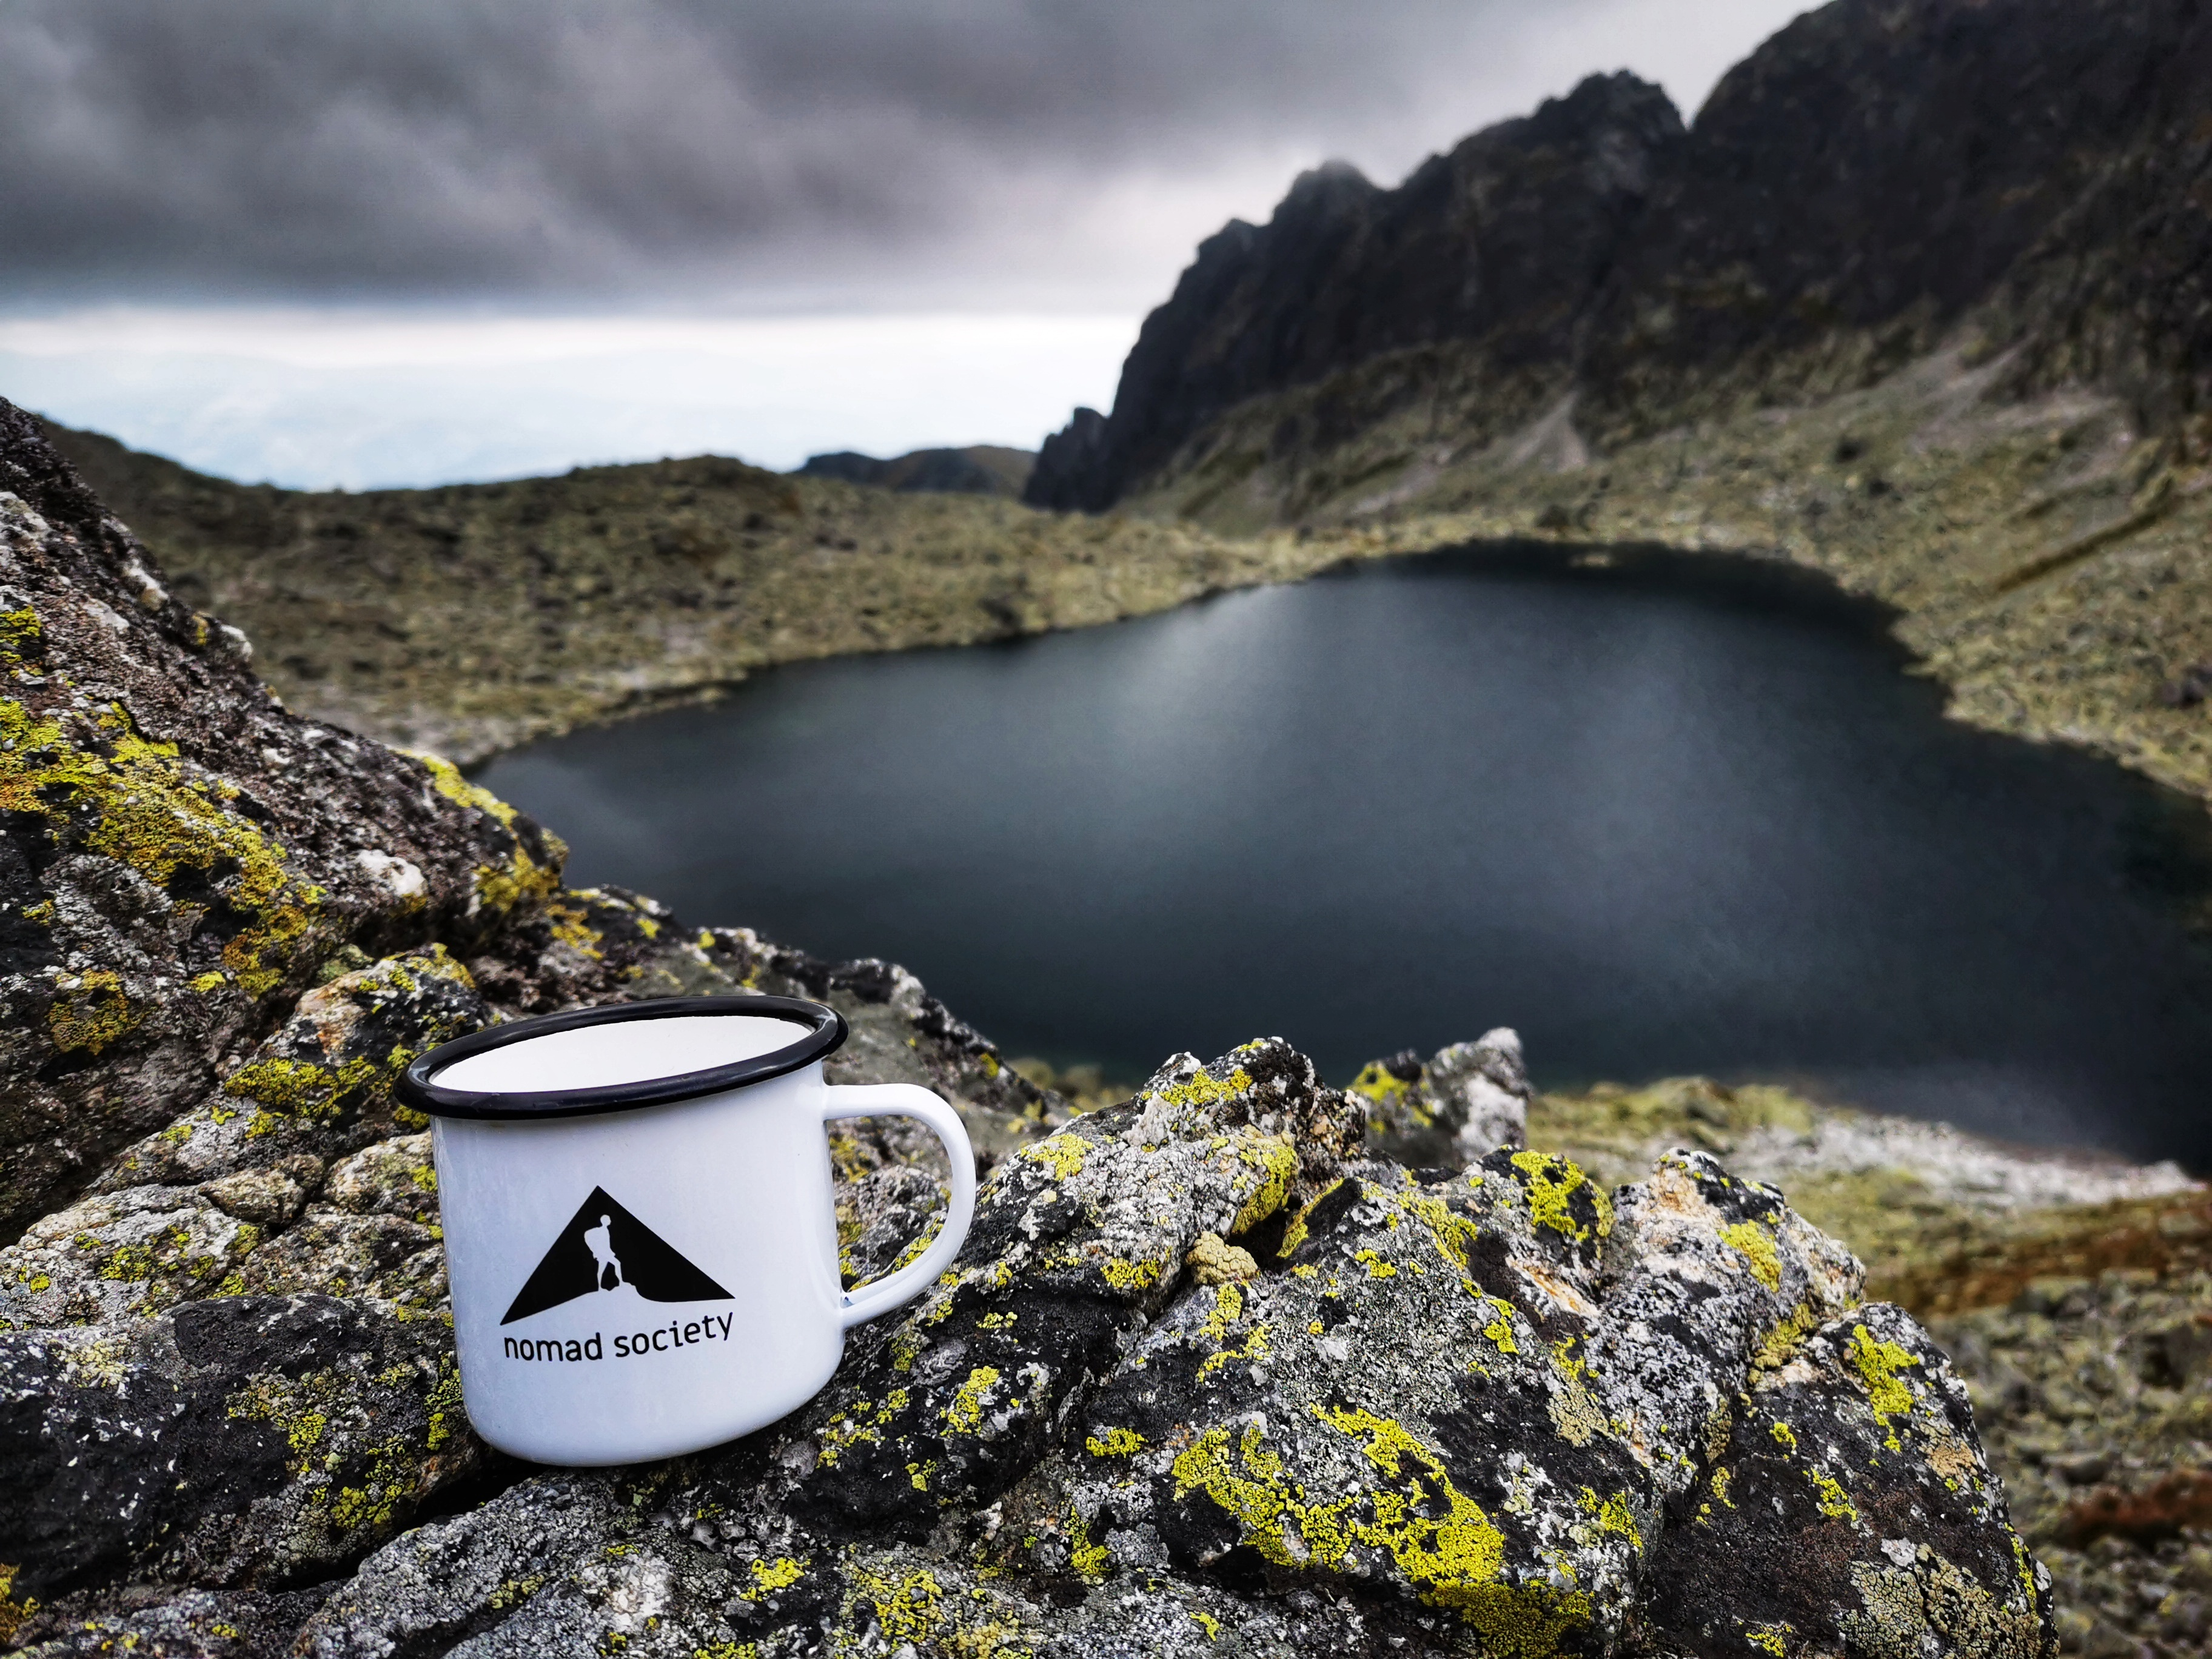 Nomad Society Mug is especially perfect for a hot morning tea or coffee, cold afternoon beer, or late evening shot of vodka, rum, gin… You can get one here: https://nomadsociety.cz/shop/.